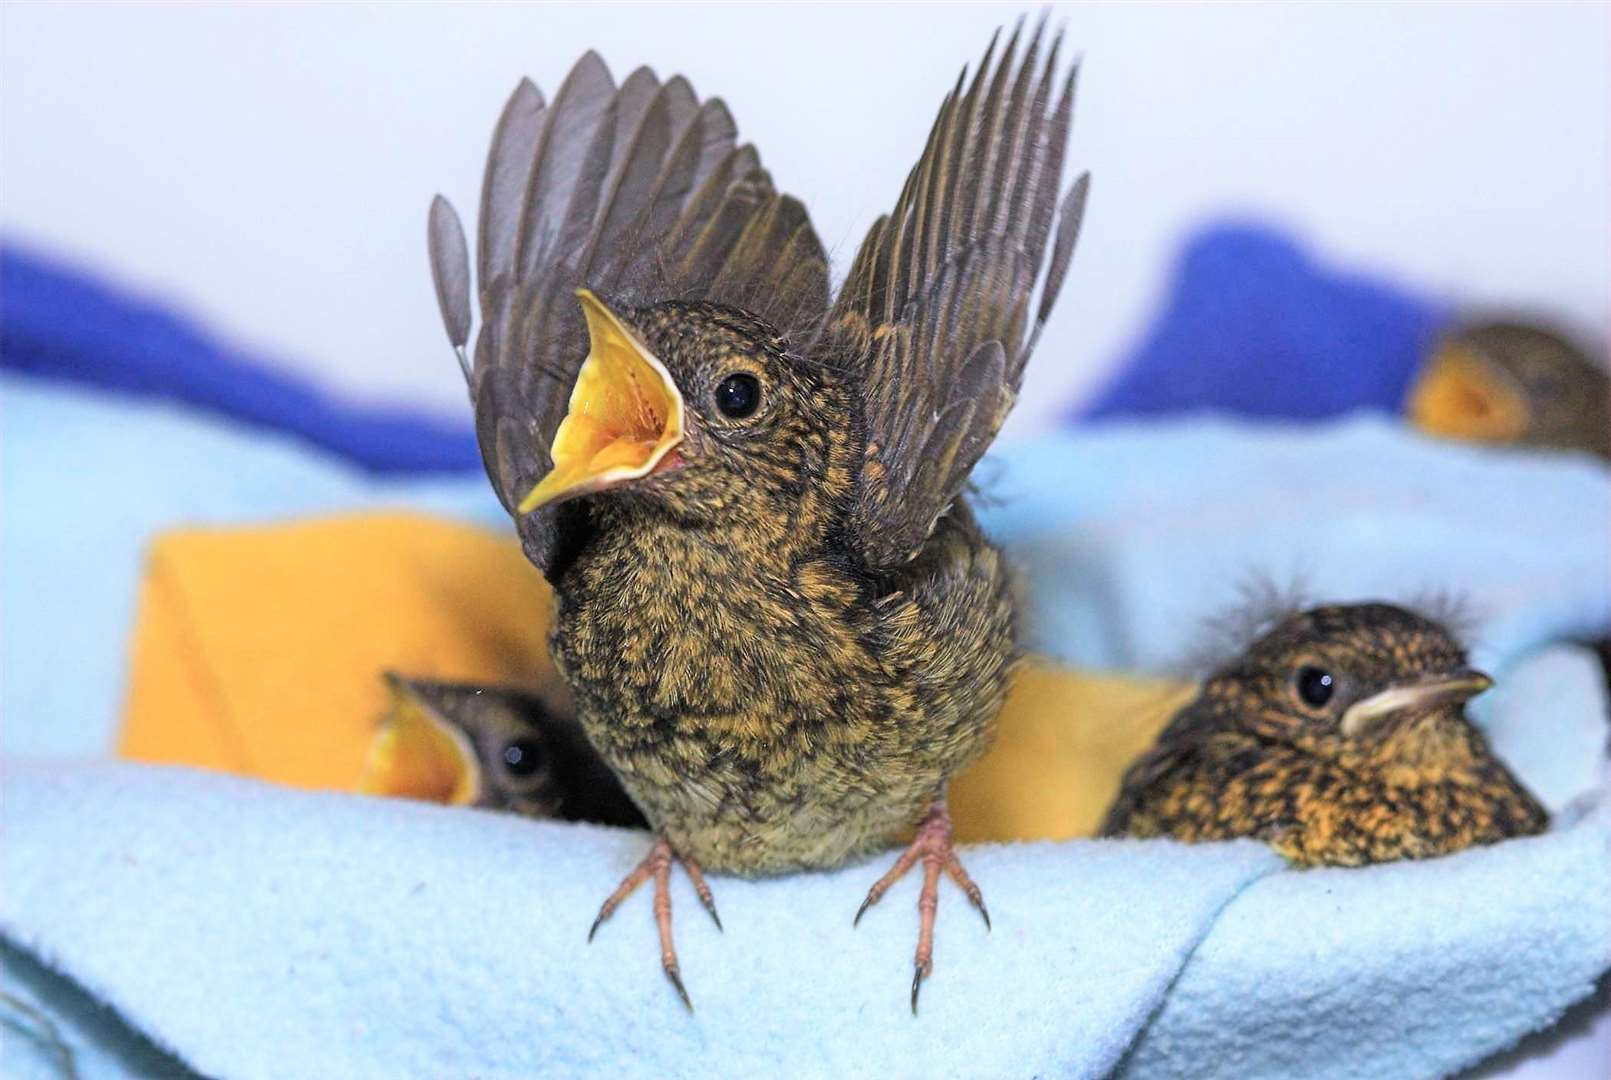 Baby birds rescued by the charity.